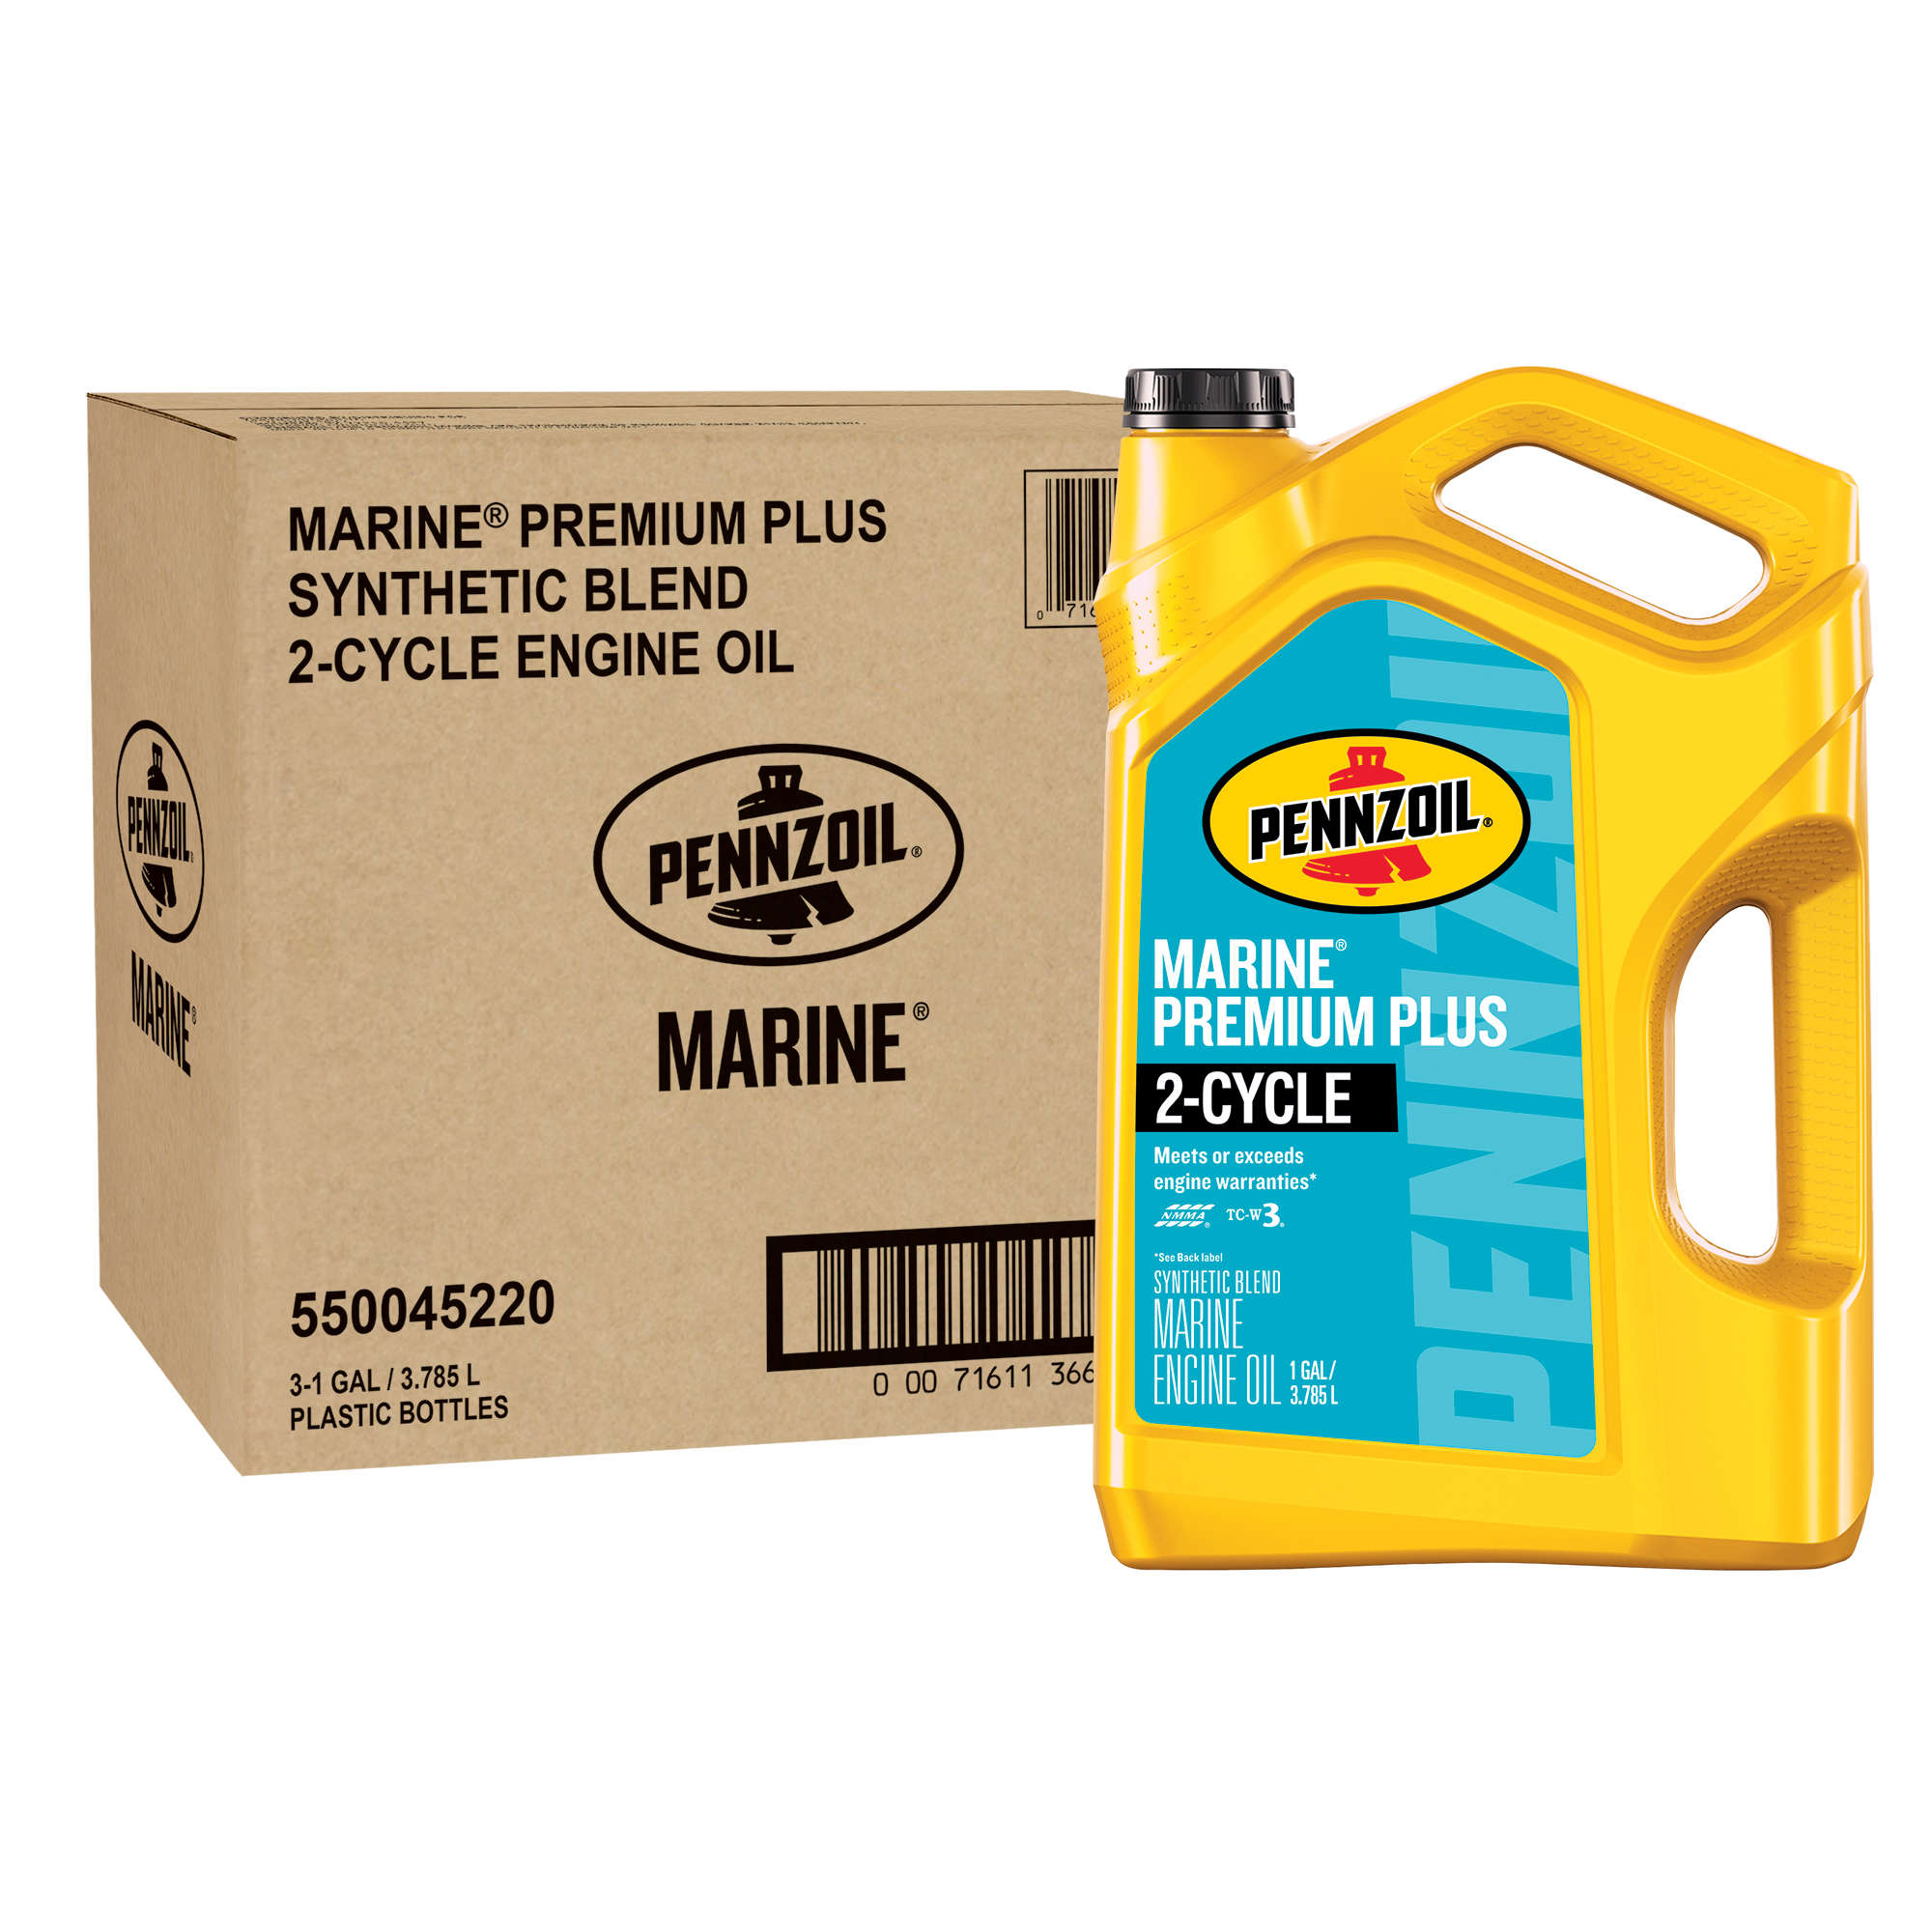 PENNZOIL MARINE PREMIUM PLUS 2-CYCLE SYNTHETIC BLEND OIL, 1 Gal